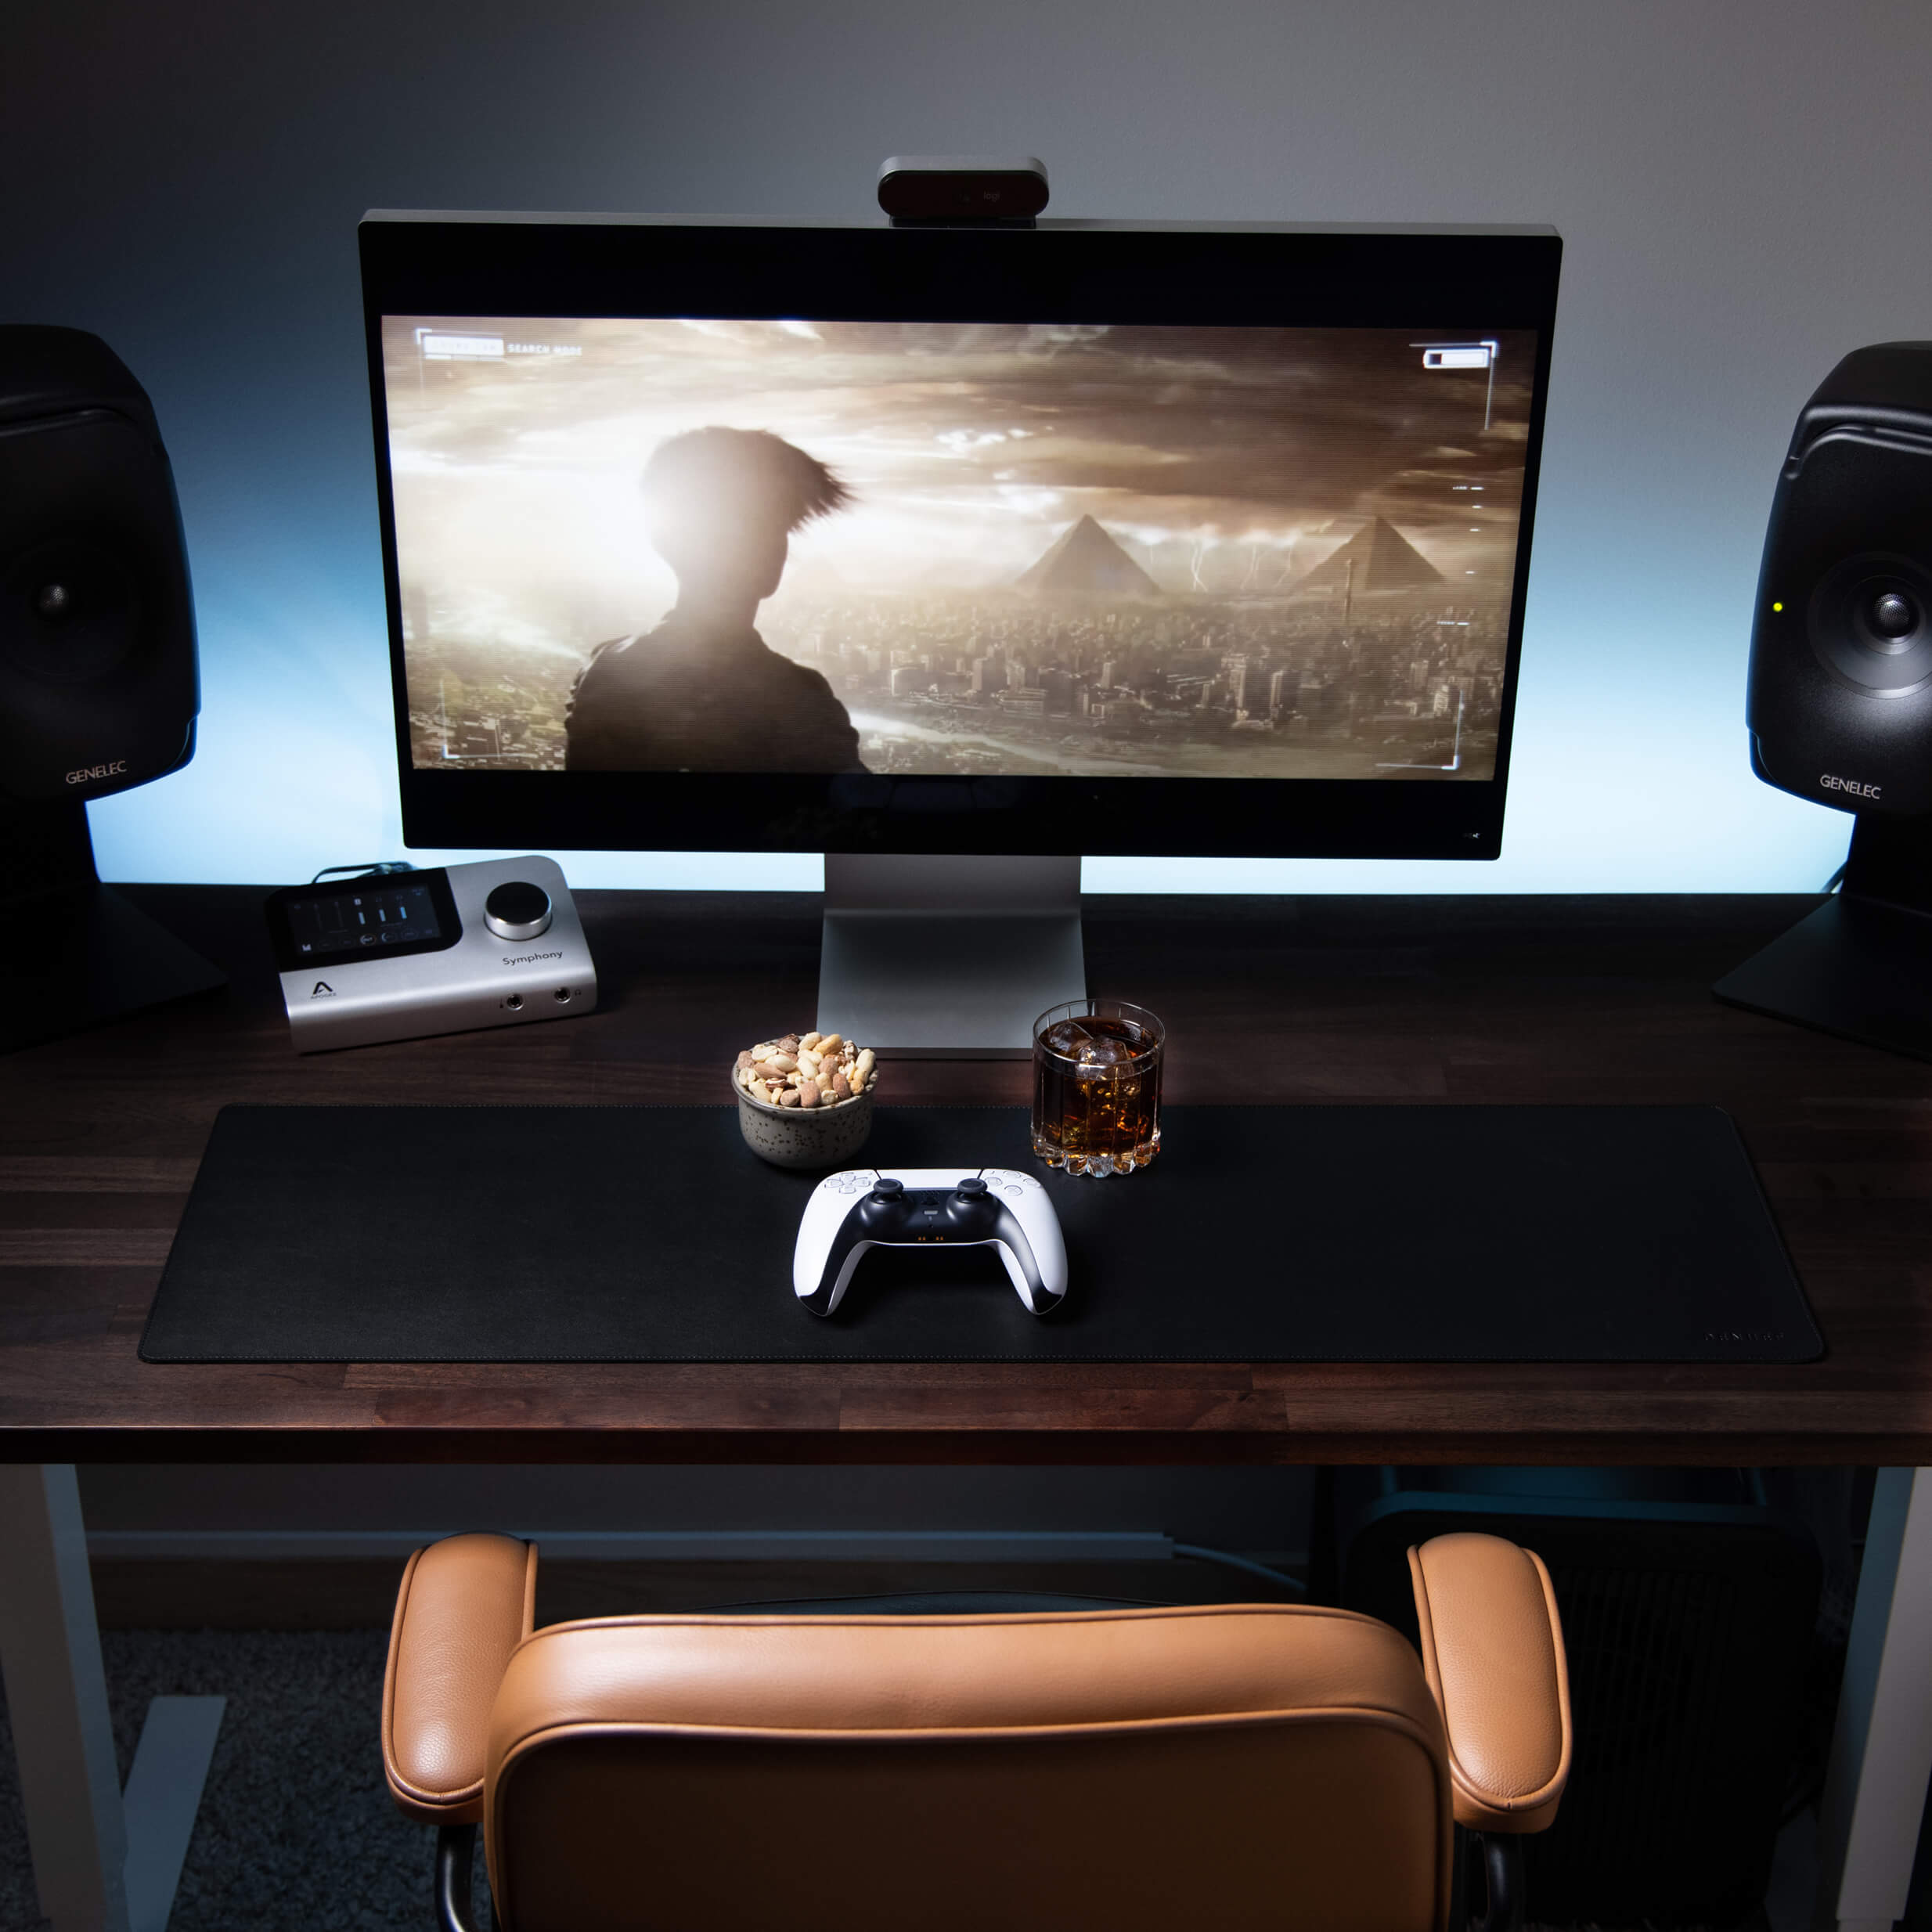 Apple 32-inch Retina 6K XDR display is David's second favourite thing about his setup